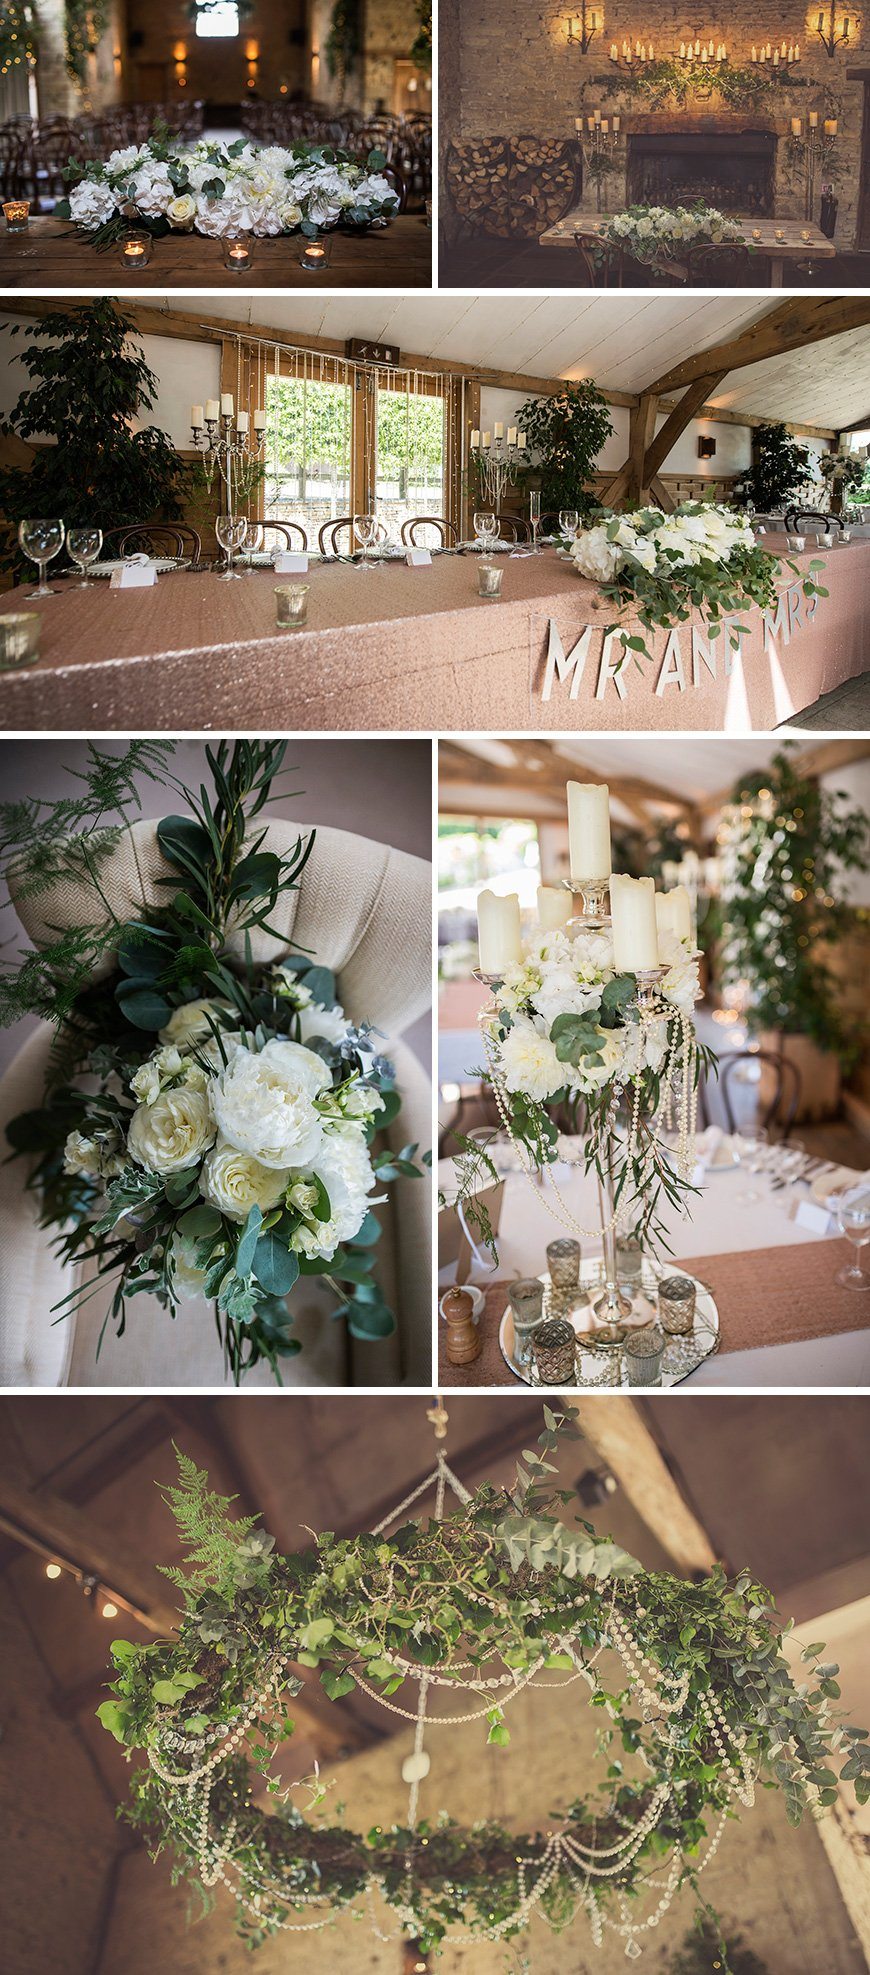 Real Wedding - Sky and Lee's Vintage Wedding At Cripps Barn - Decorations | CHWV